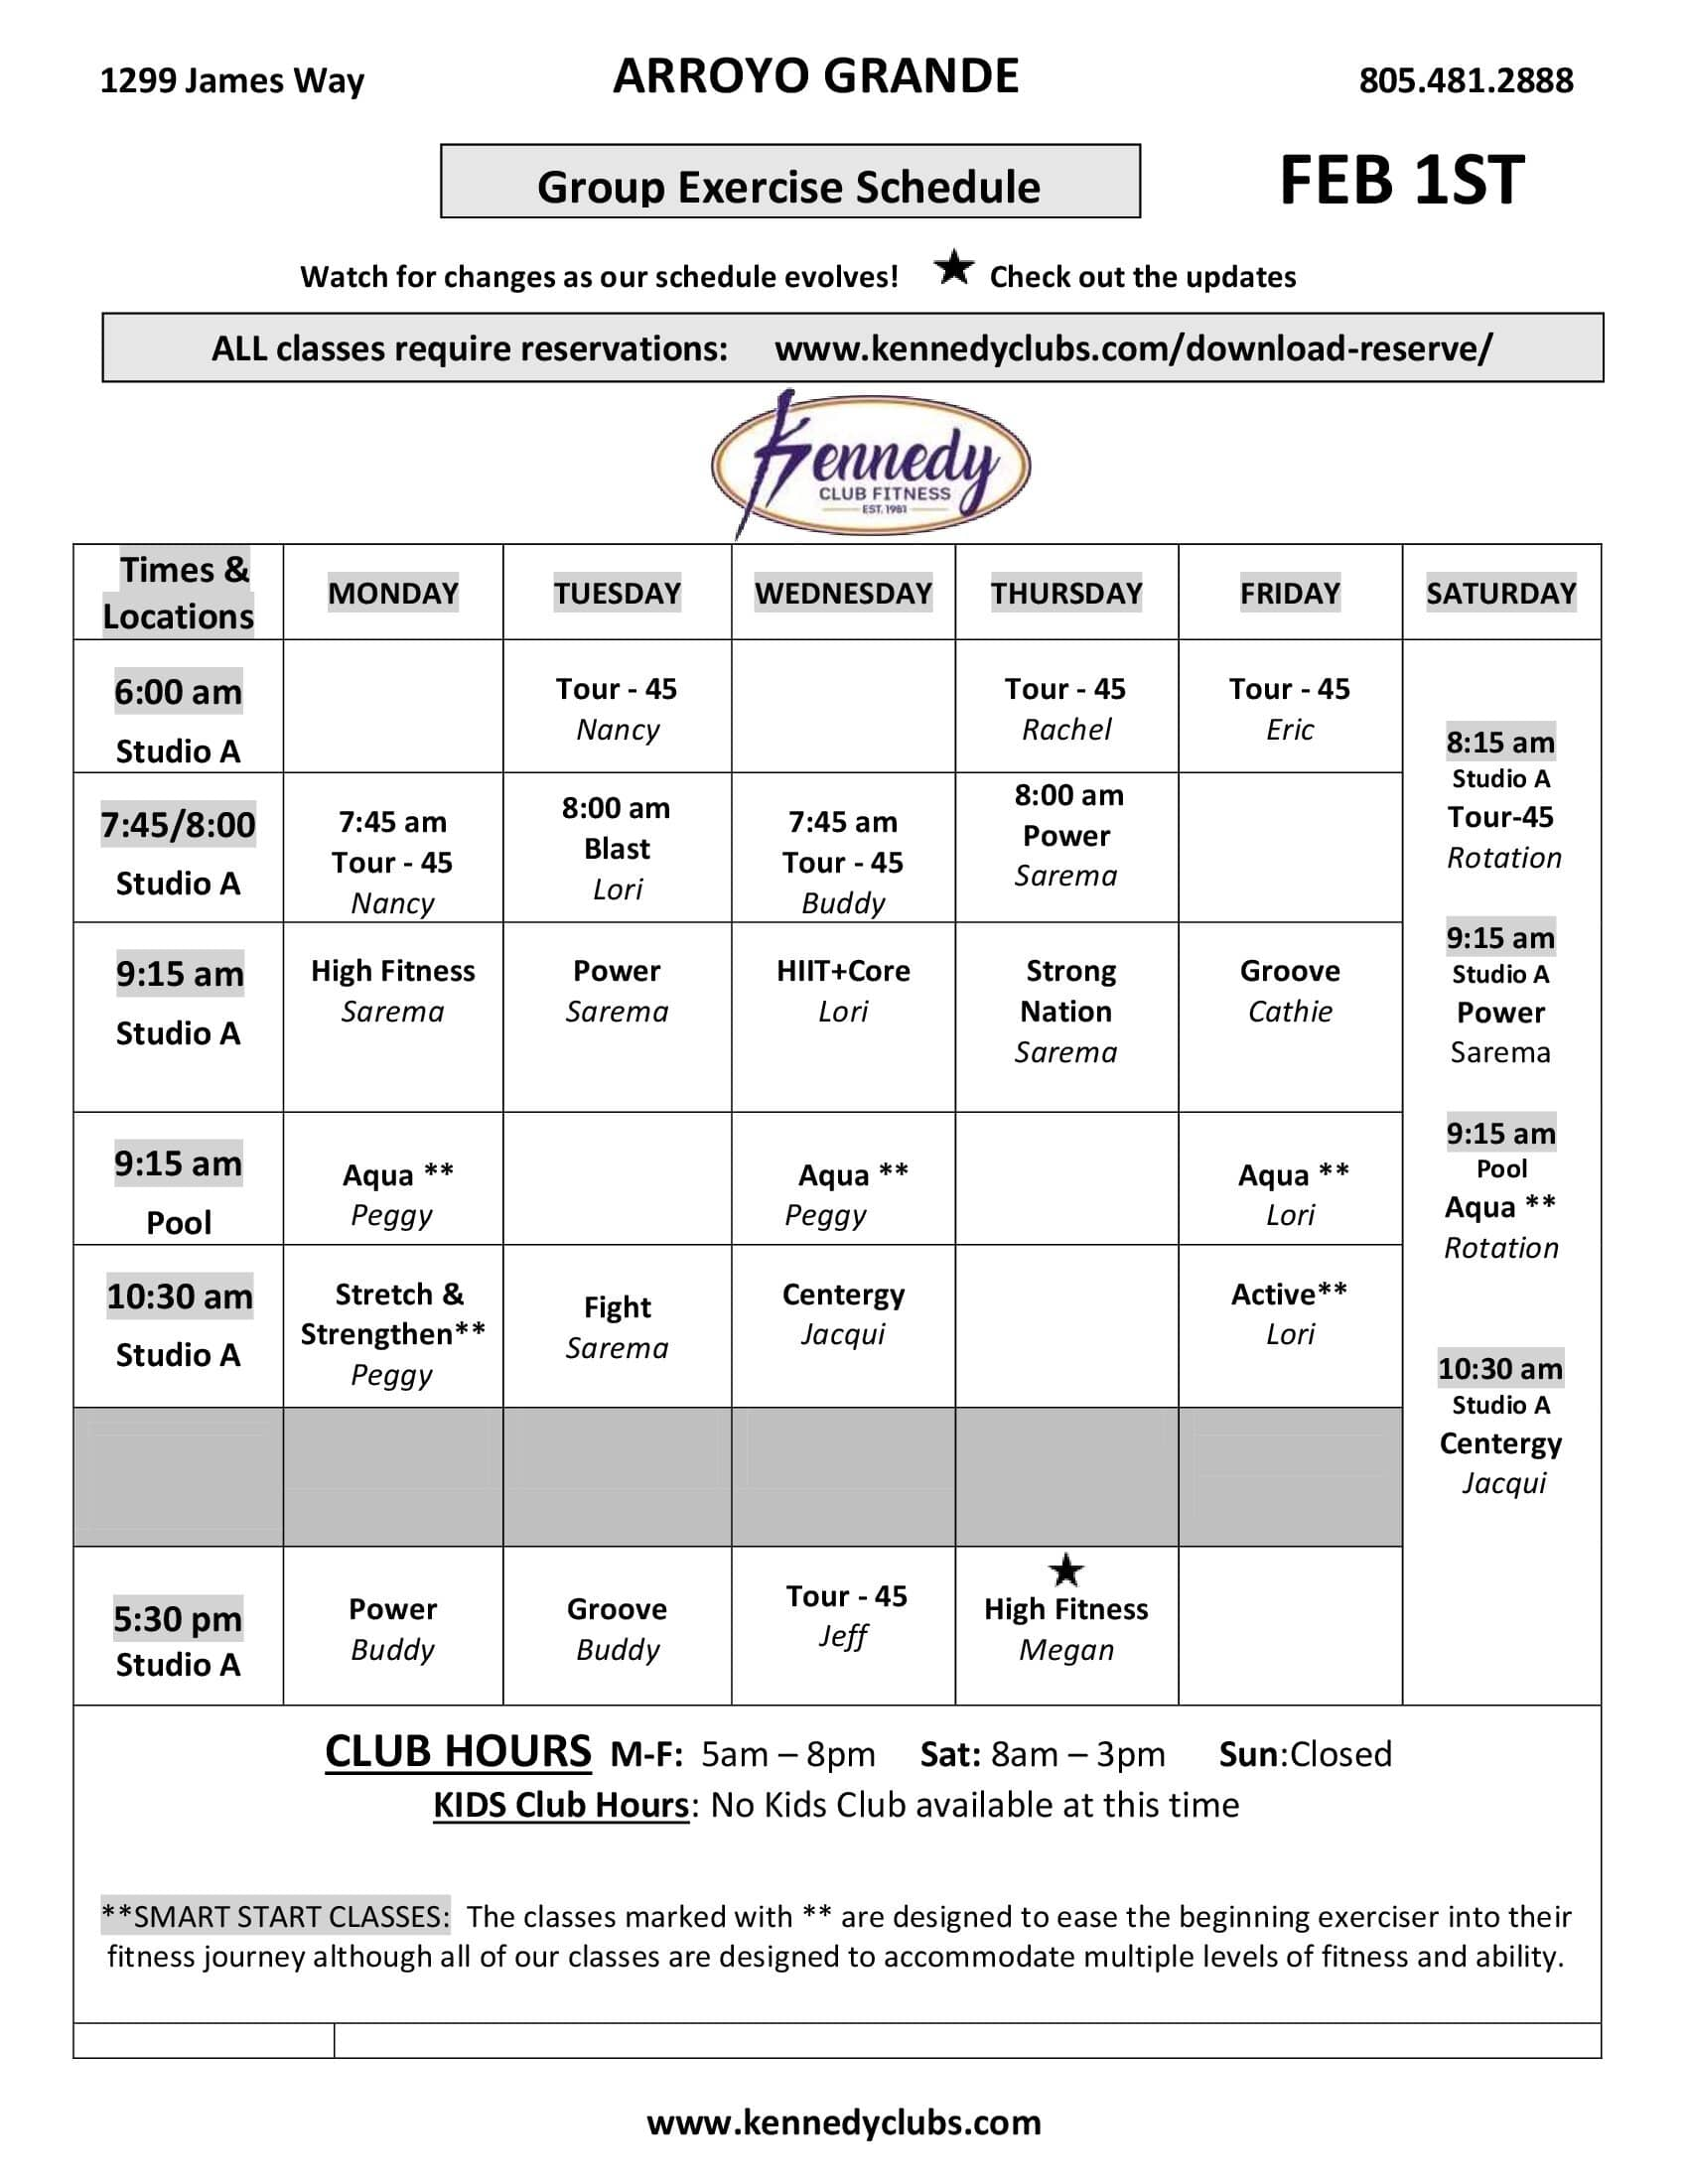 Kennedy Club Fitness Arroyo Grande Group Exercise Schedule 02 01 2021